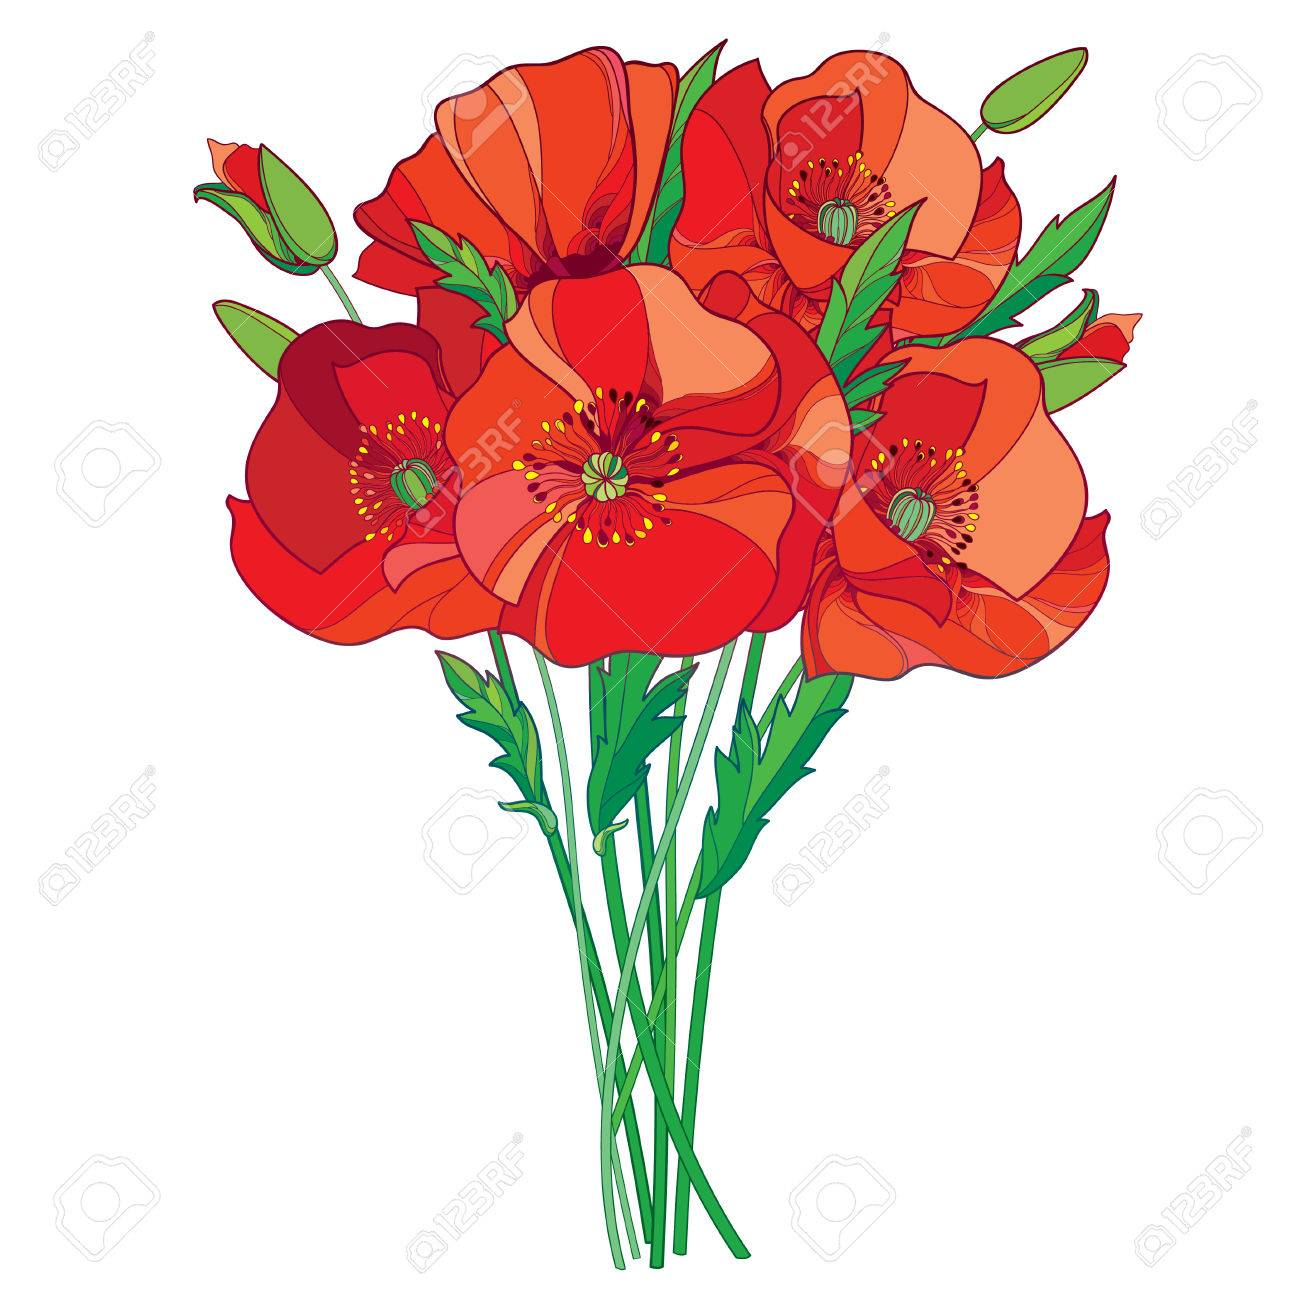 Bouquet with outline red poppy flower bud and green leaves isolated bouquet with outline red poppy flower bud and green leaves isolated on white background mightylinksfo